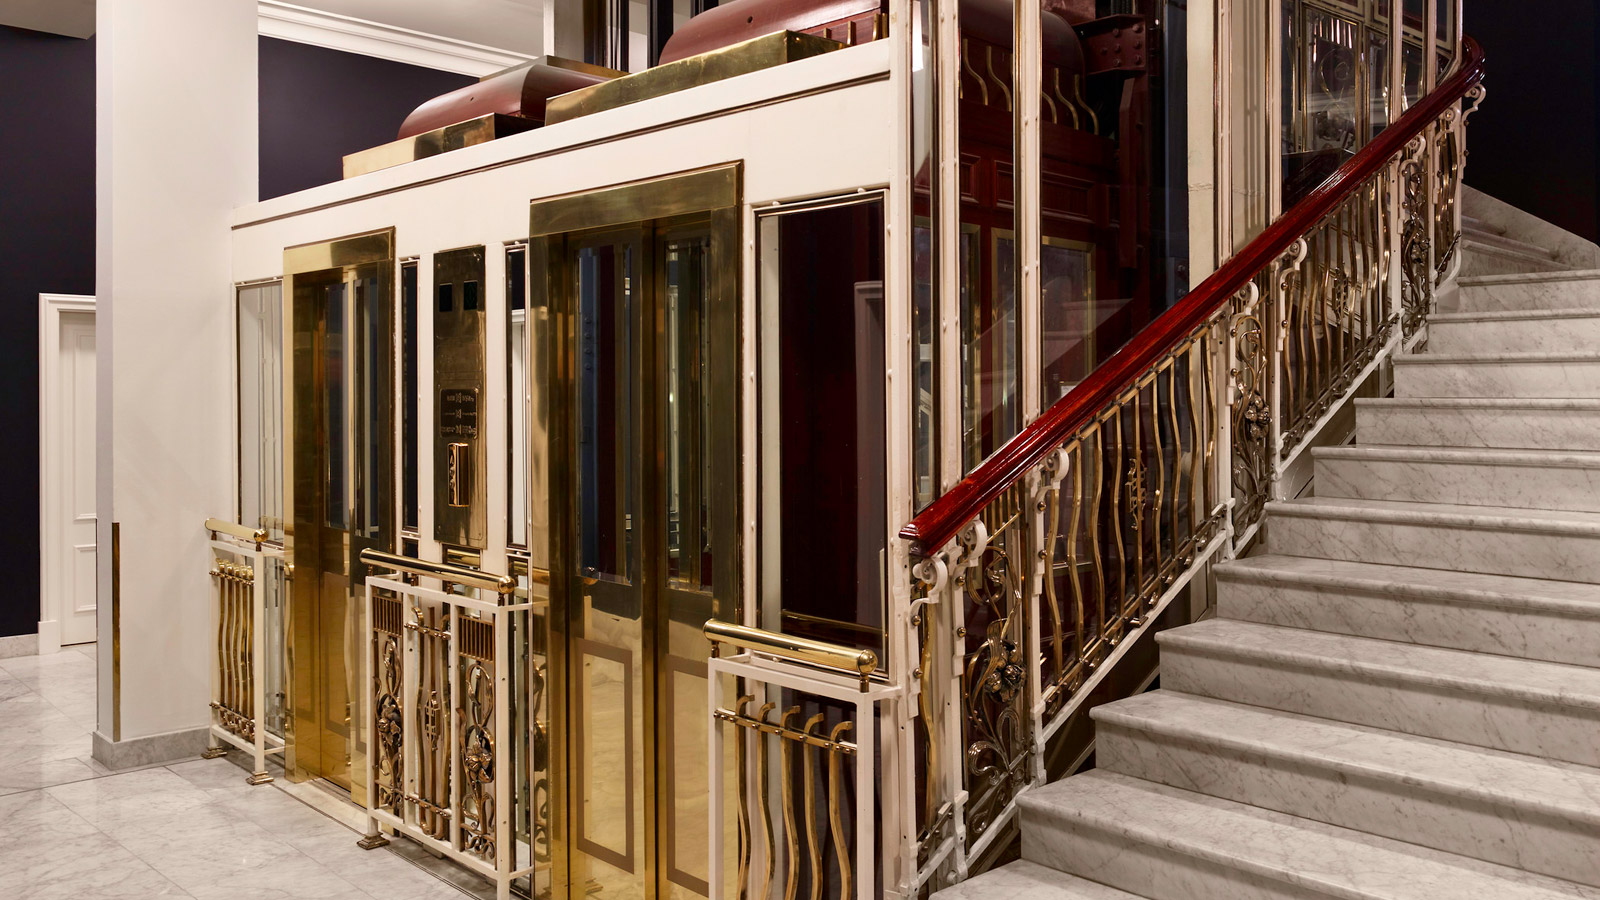 The elevators have been fully renovated to pay tribute to the turn-of-the-century styling.